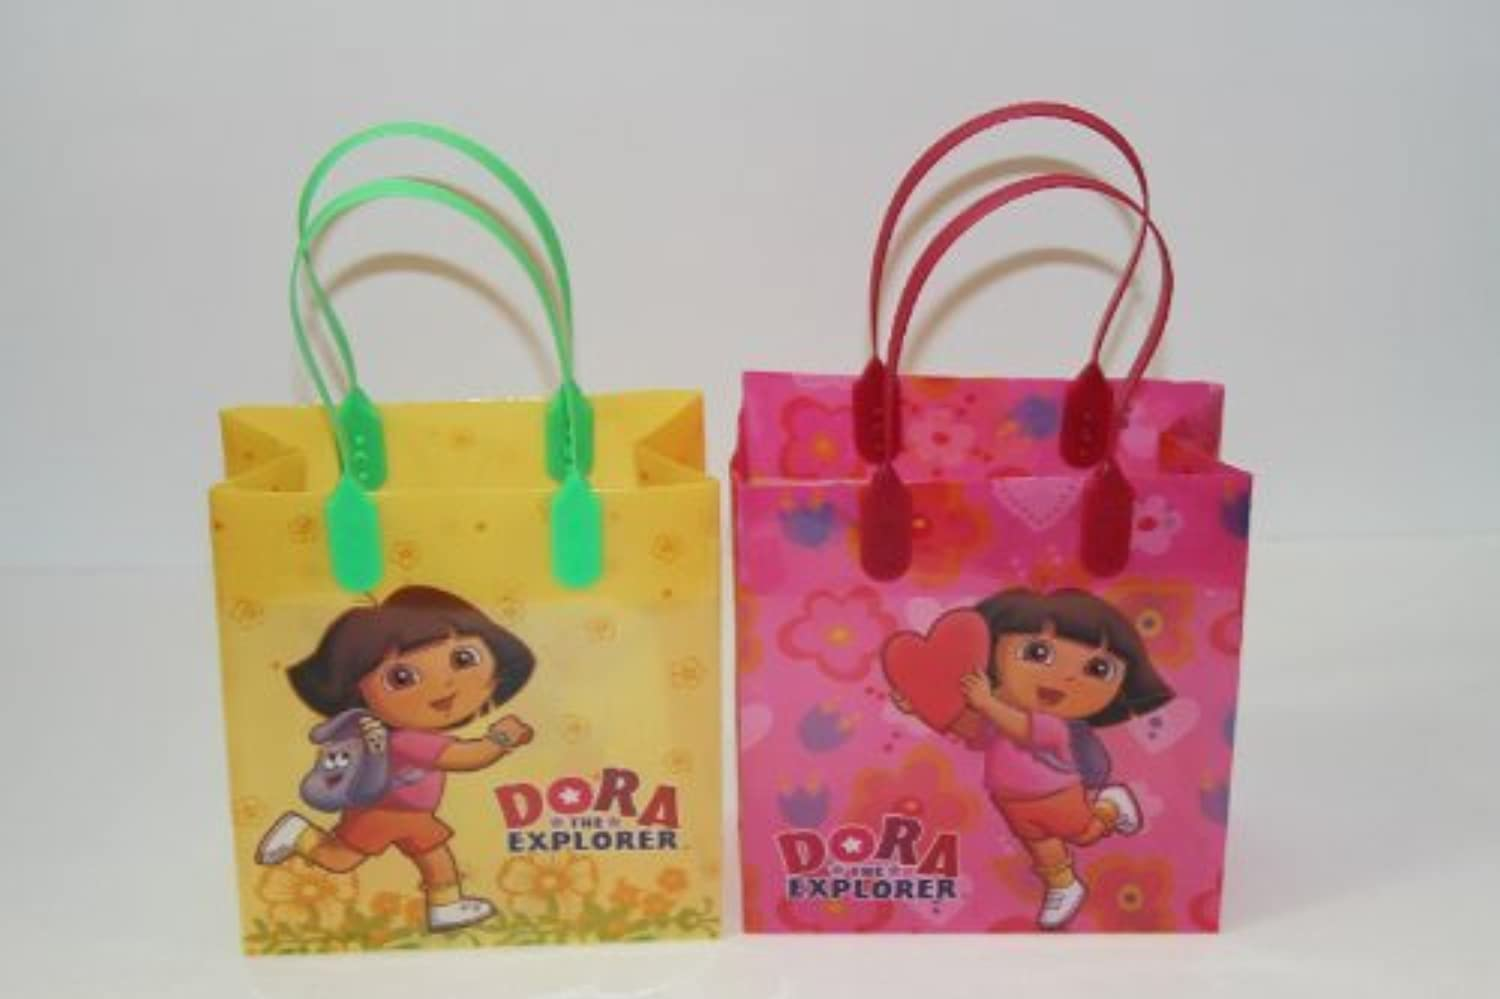 24PC DORA THE EXPLORER GOODIE BAGS PARTY FAVOR BAGS GIFT BAGS by UPD